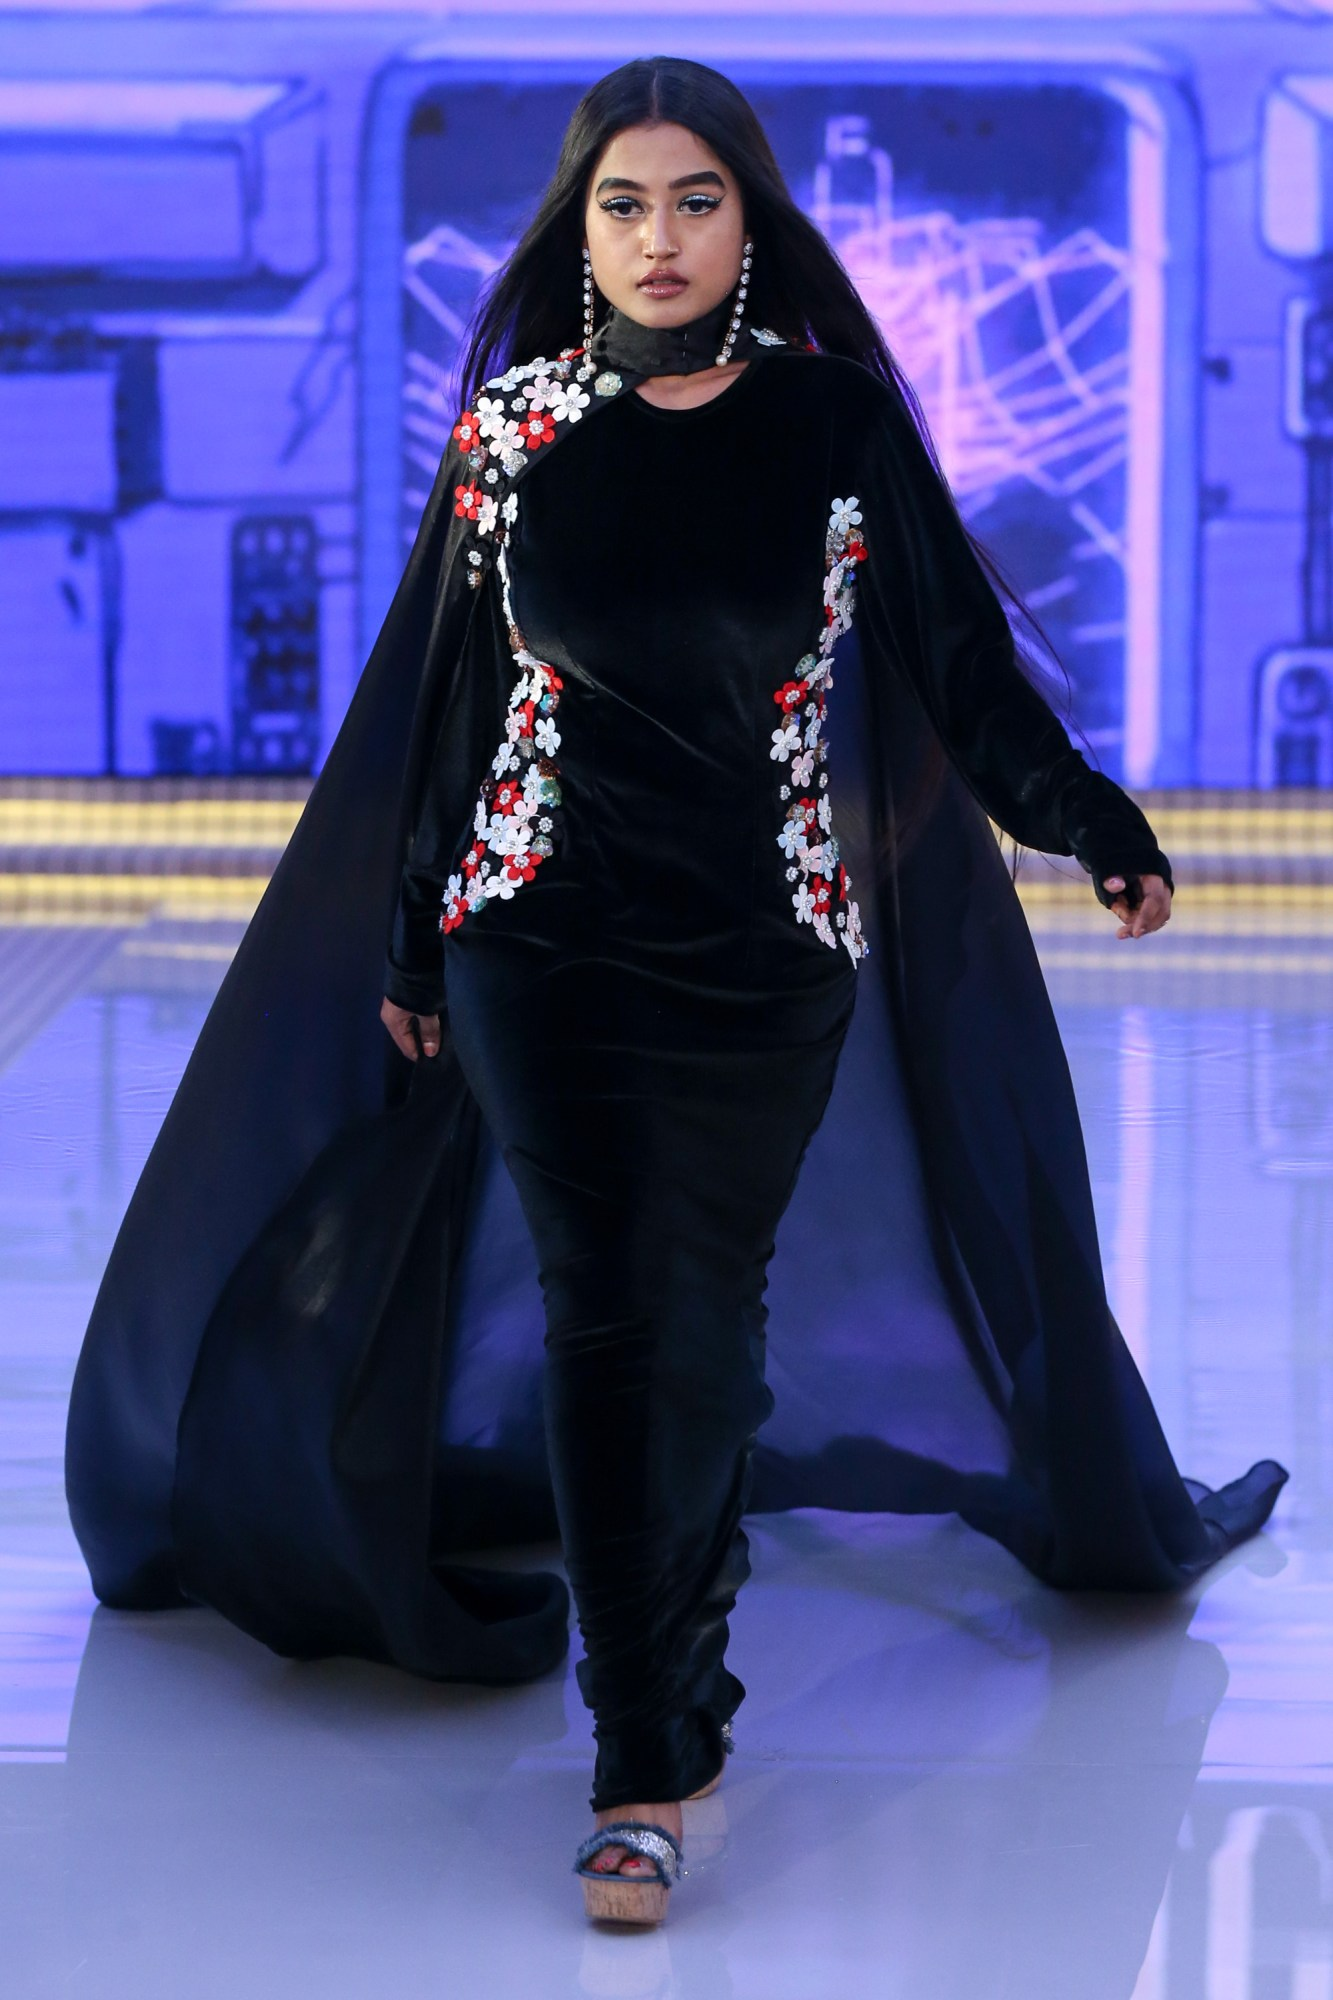 Fllumae